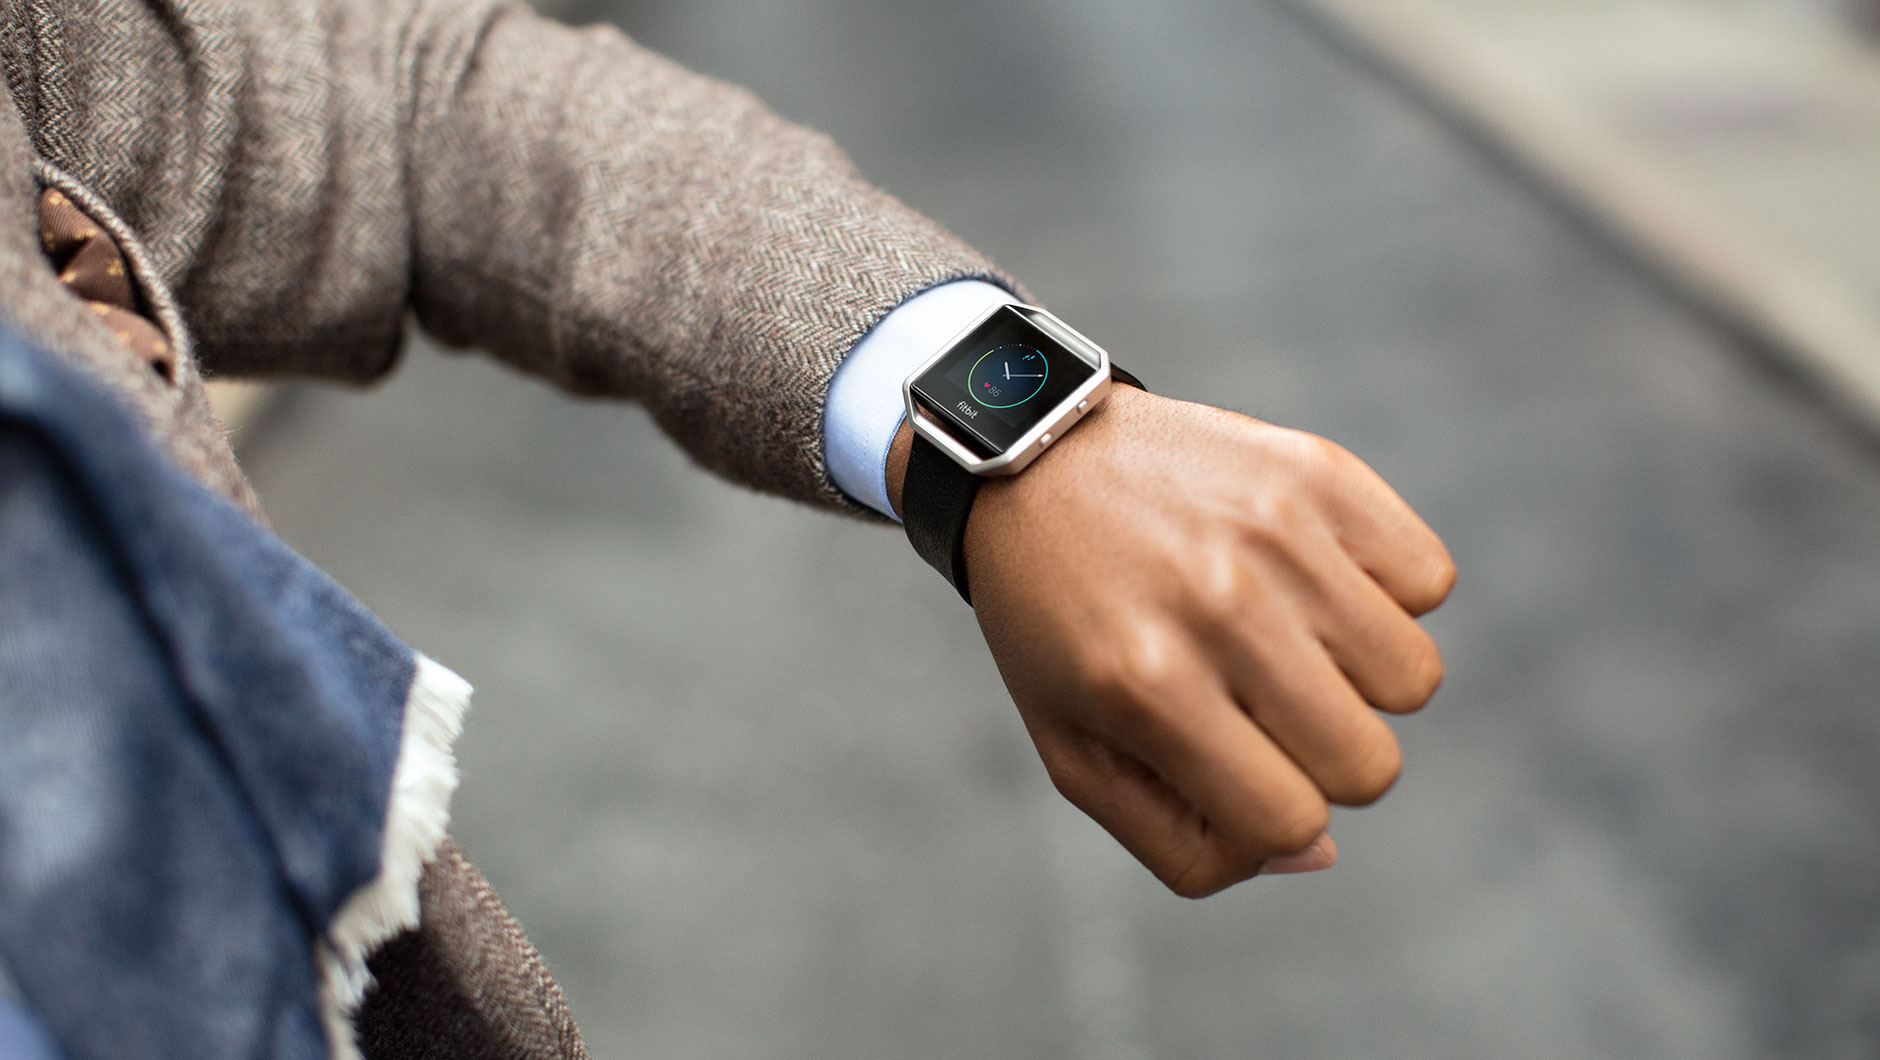 A 'Proper' Apple Watch Competitor from Fitbit May Launch Without Apps or an App Store